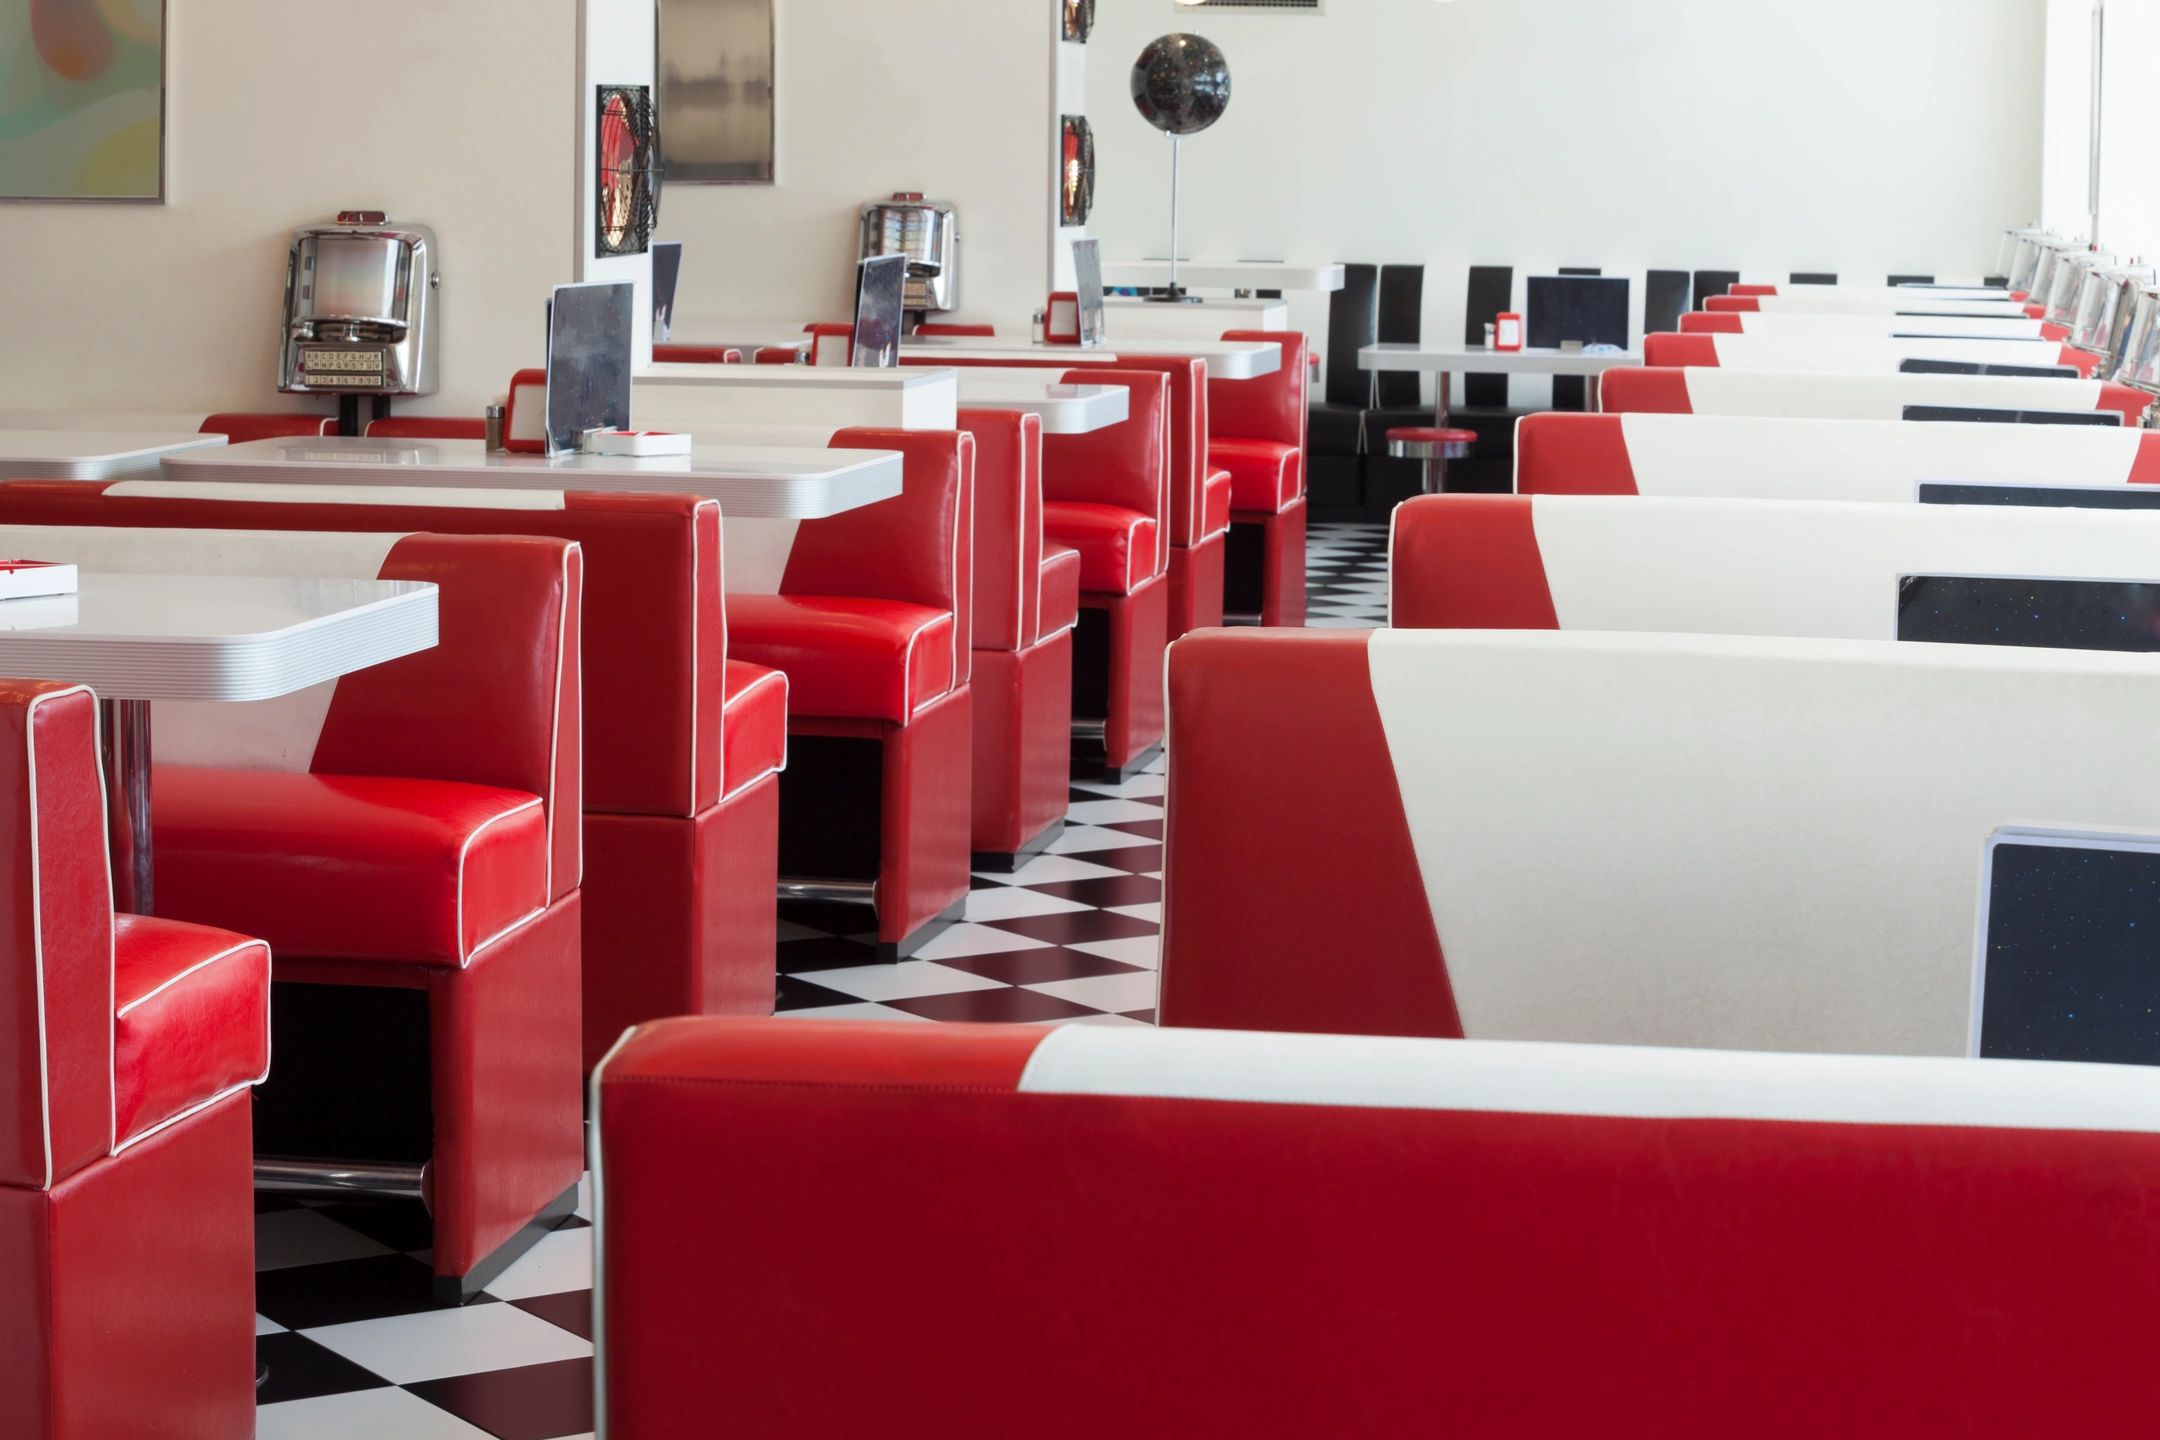 Restaurant Furnishings and Fitout